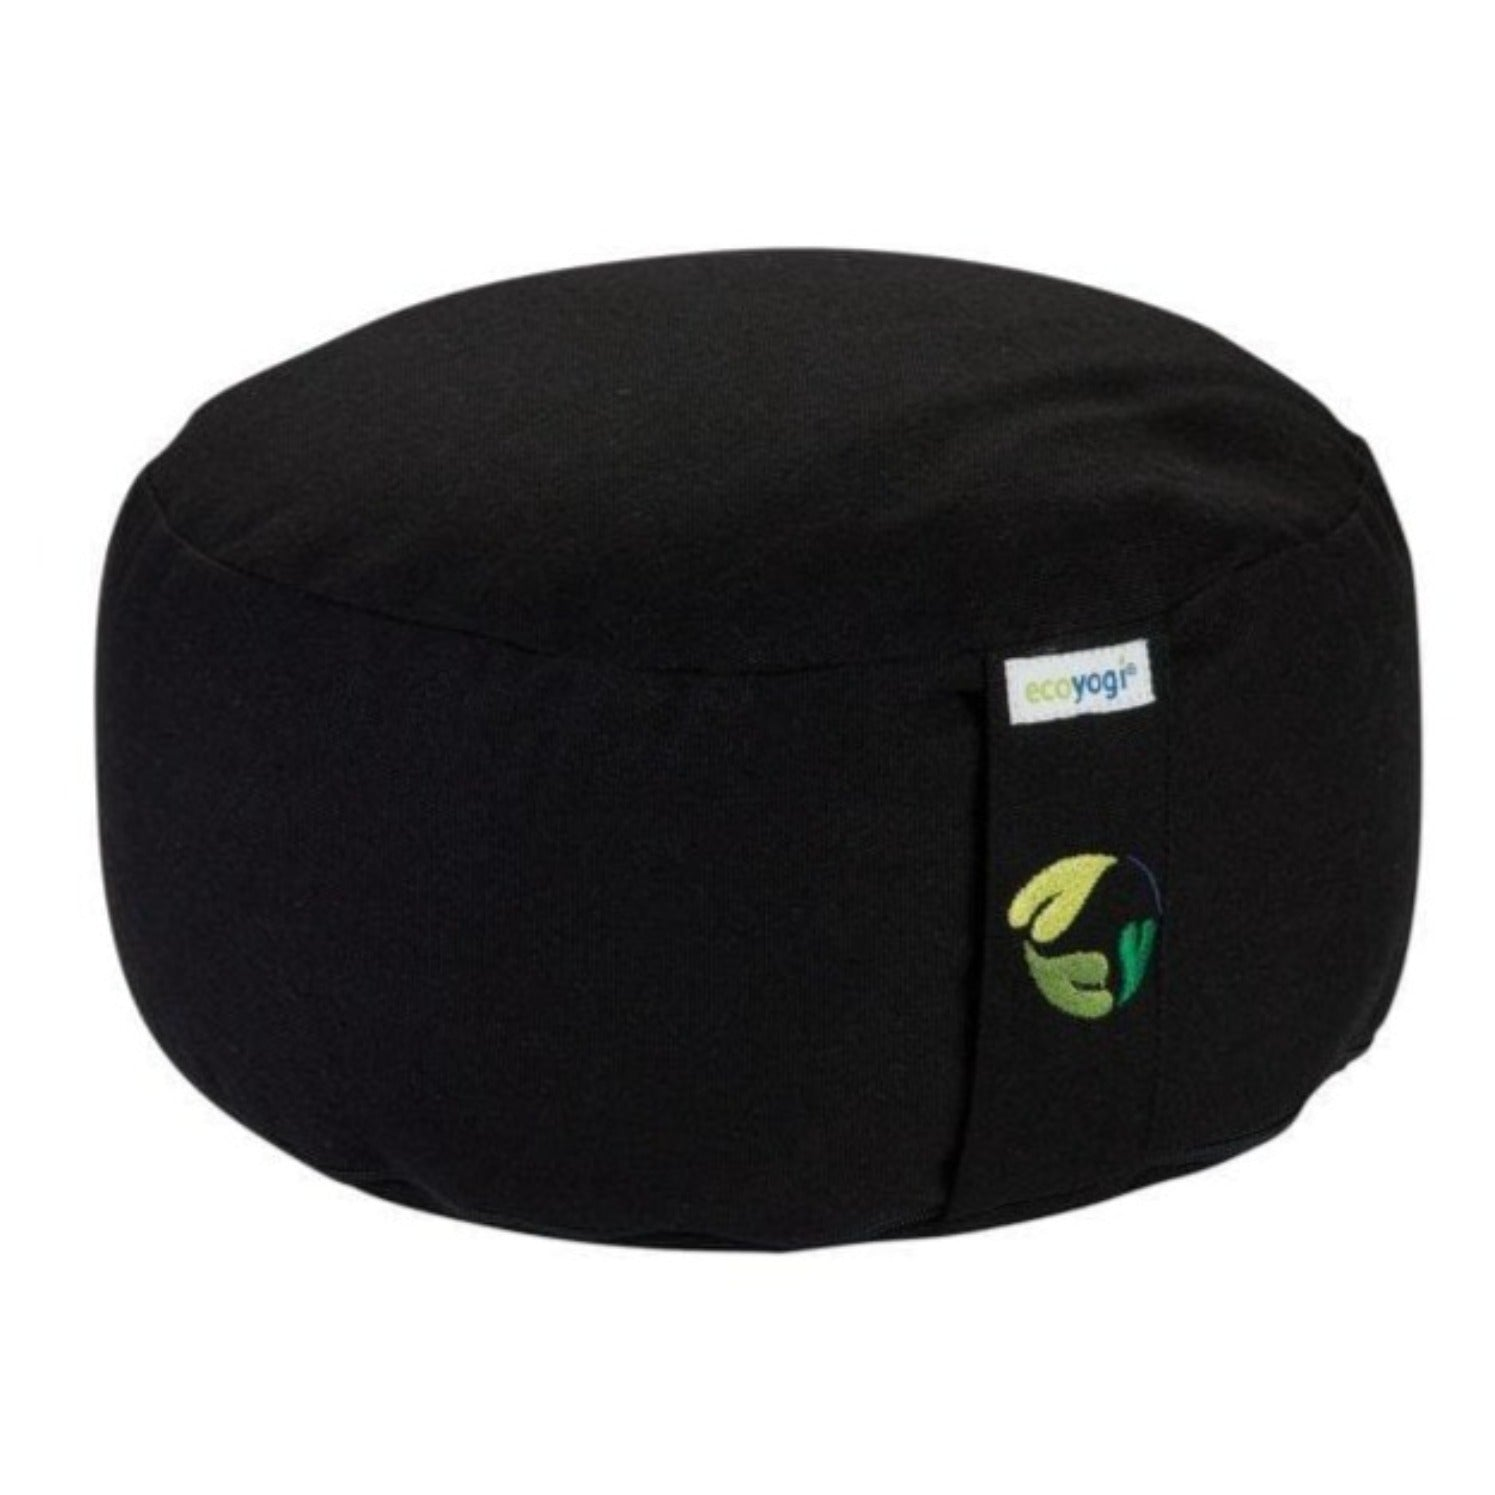 Organic cotton meditation cushion - black